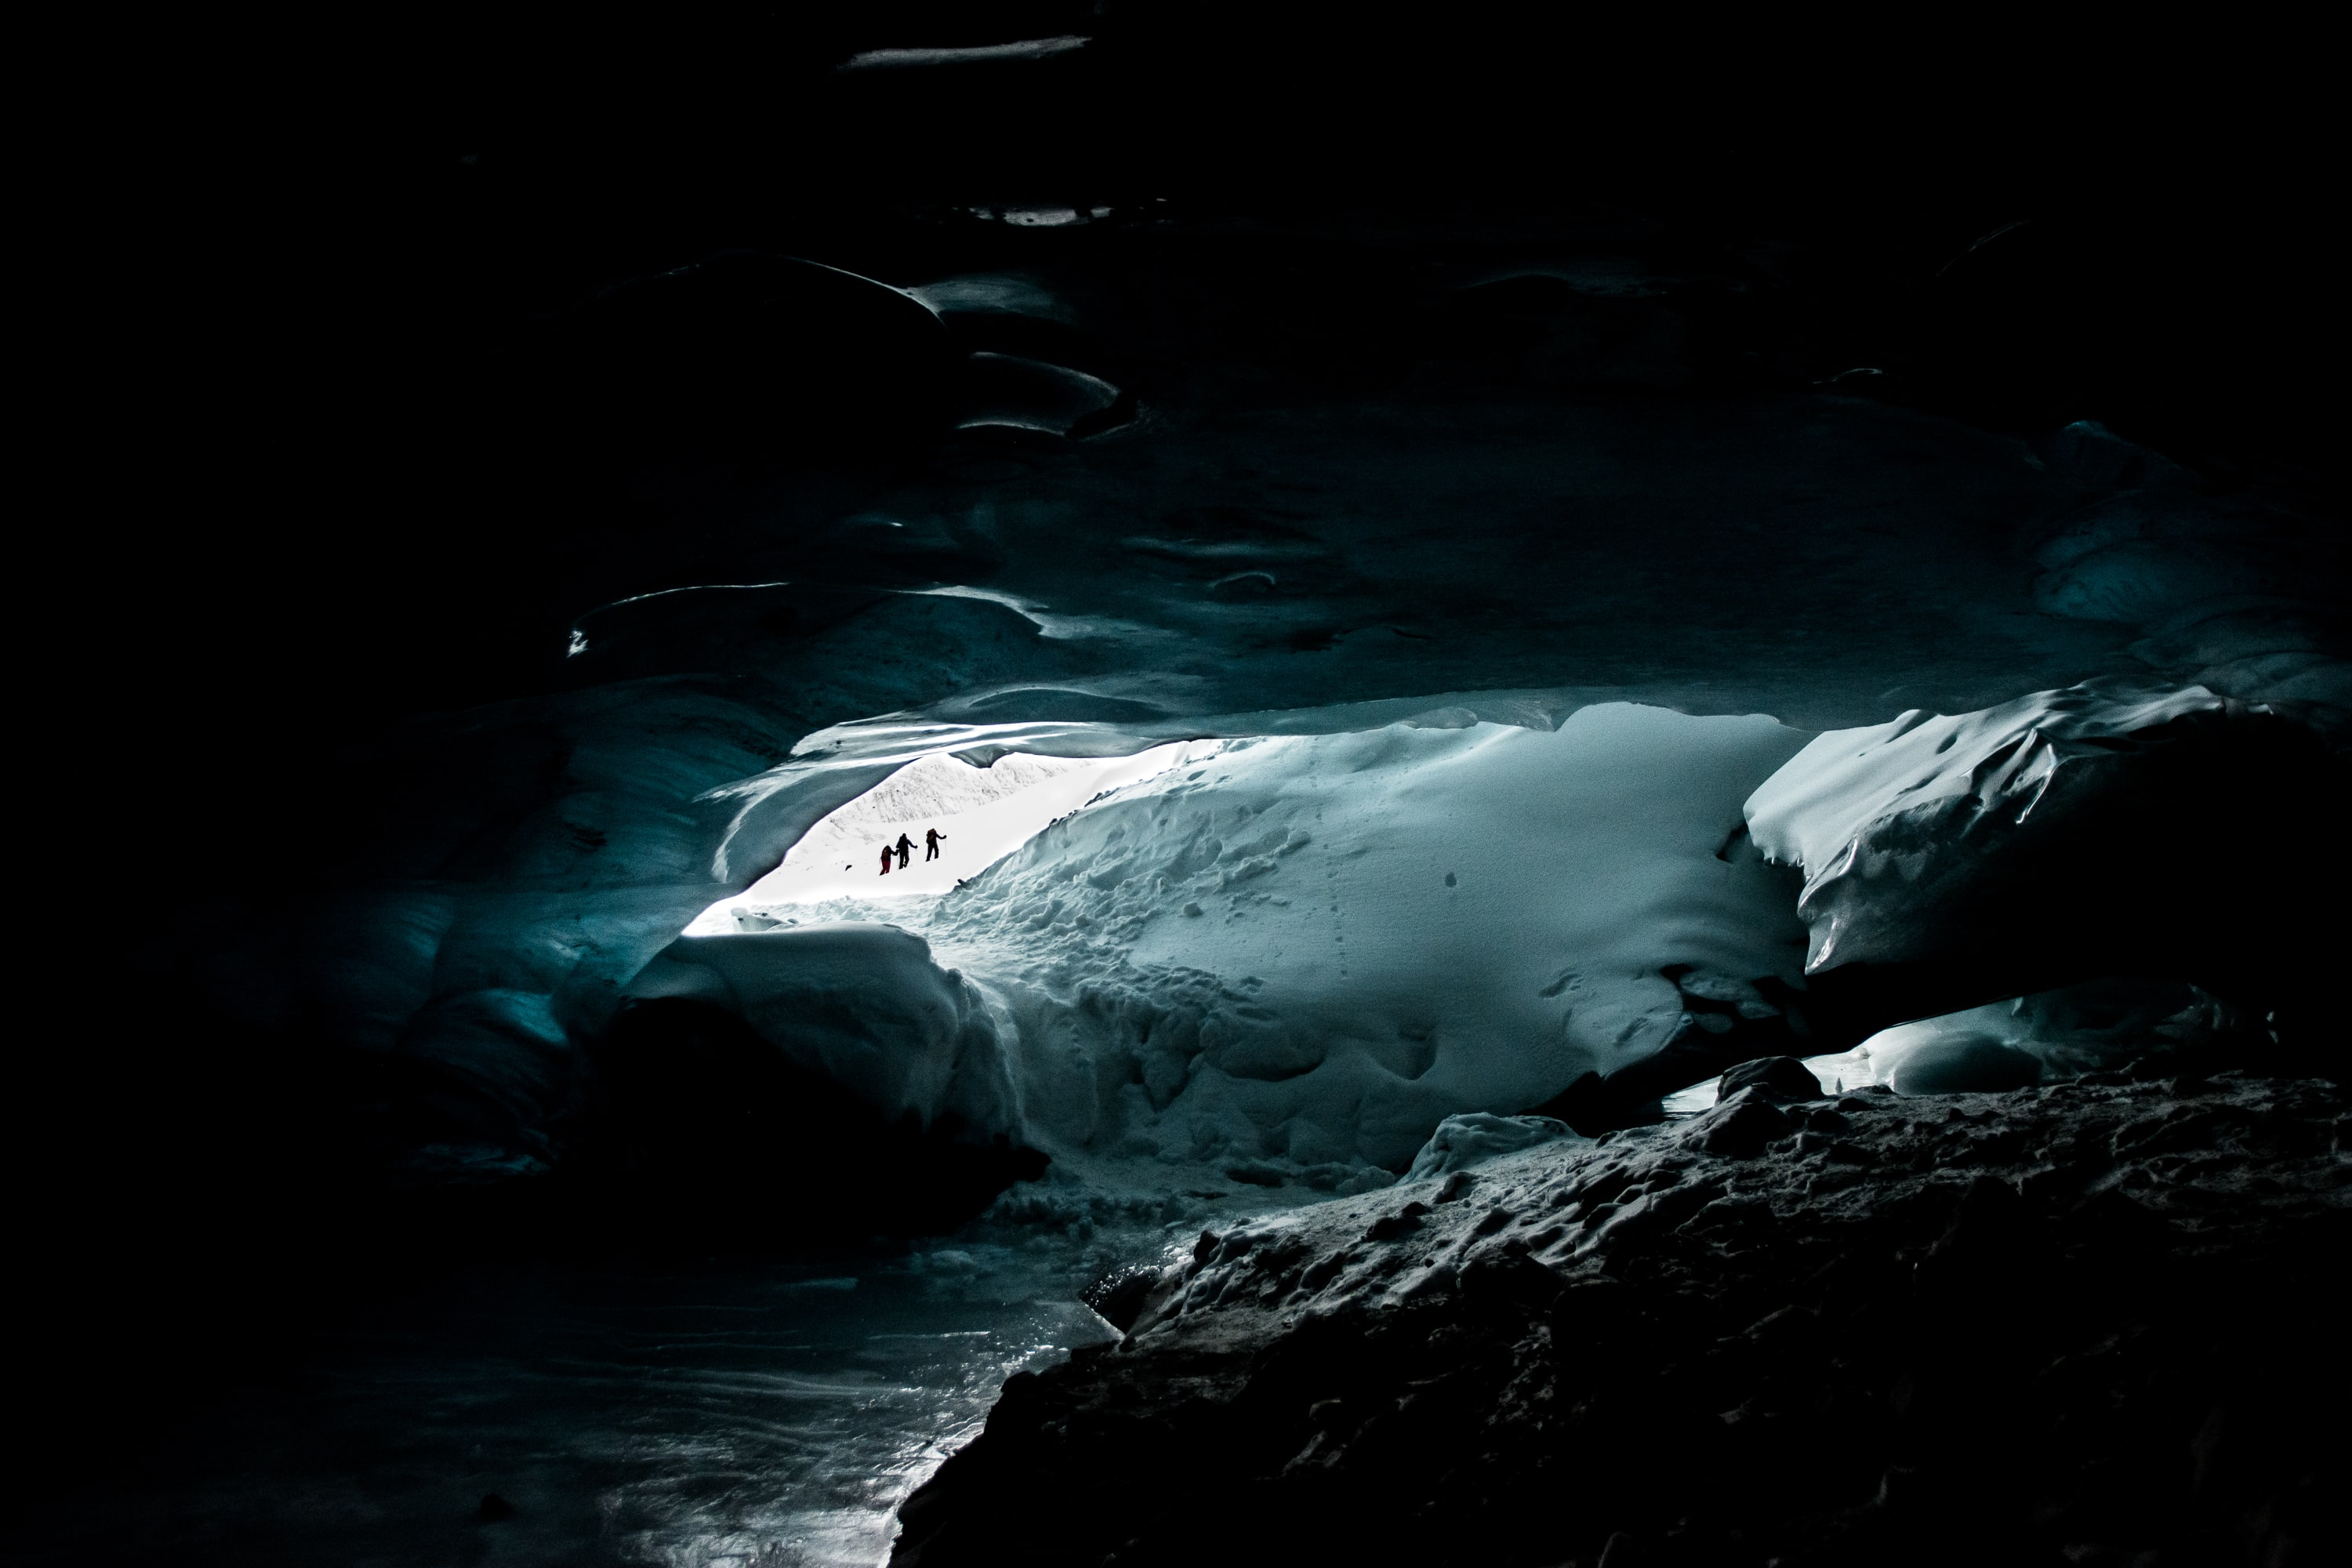 People in the opening of a cave filled with ice and snow